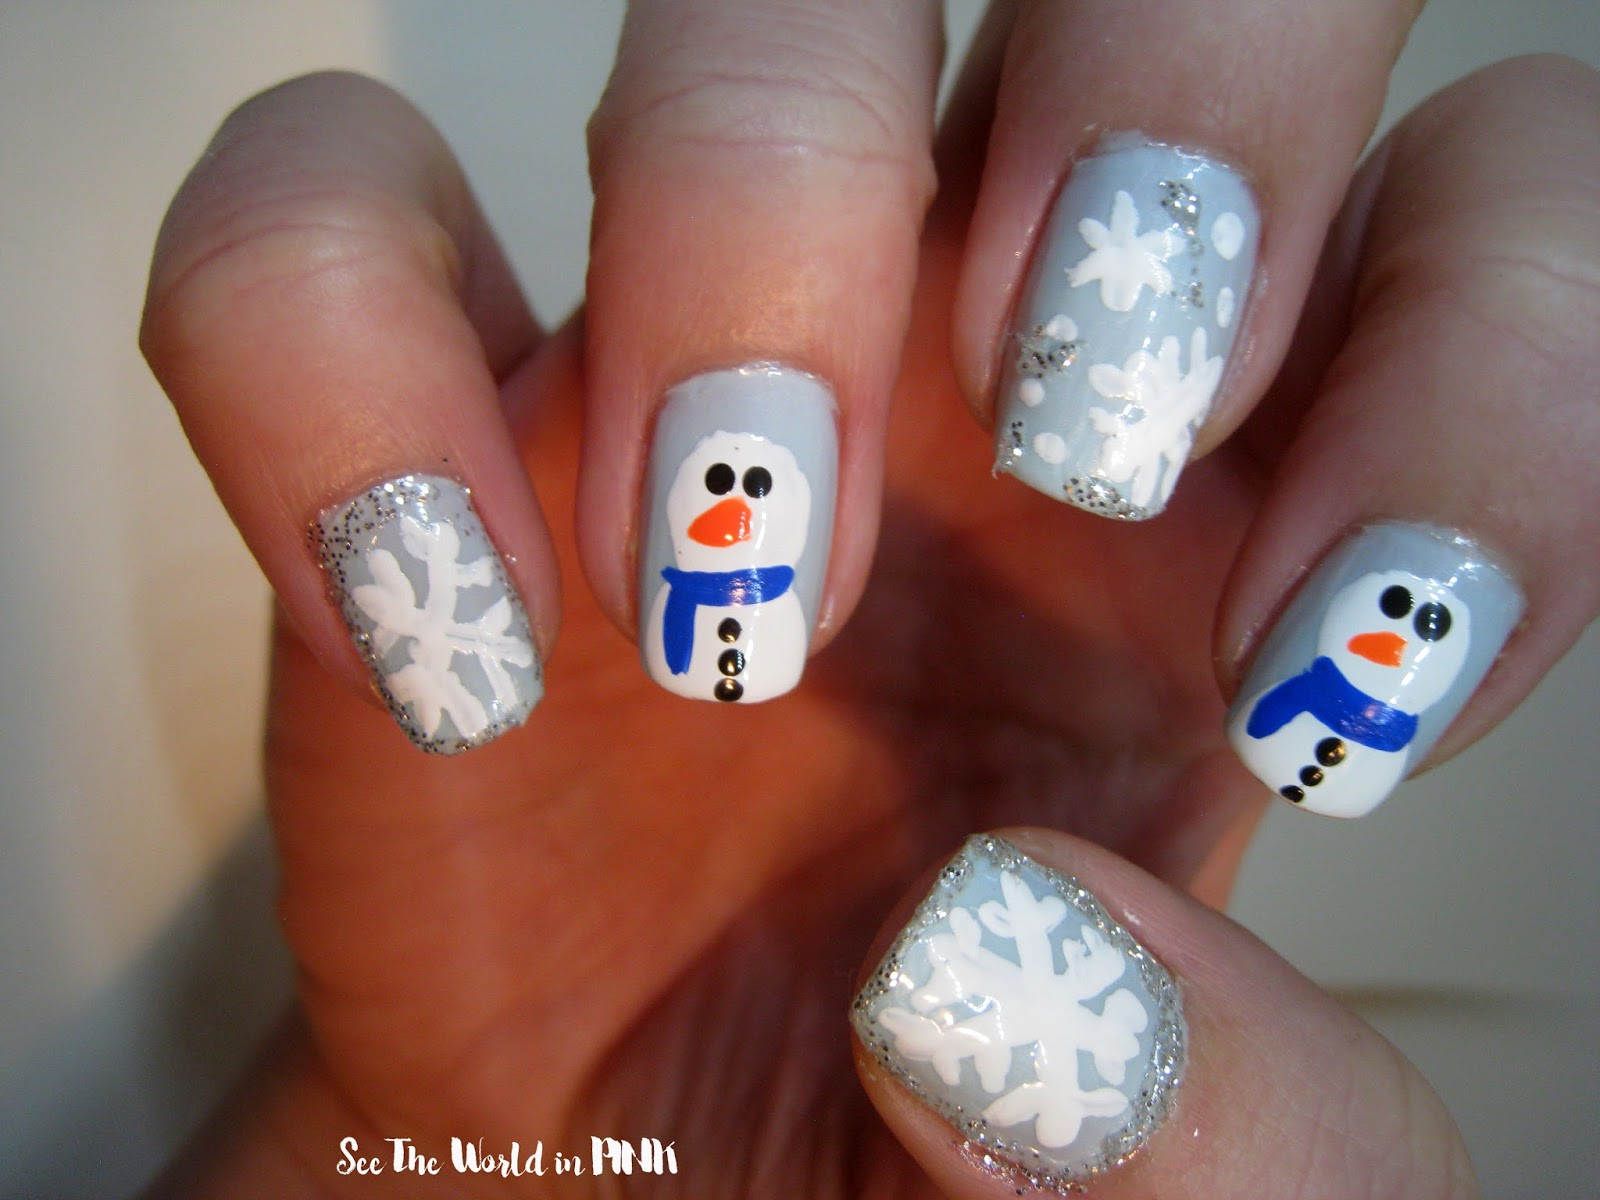 Manicure Monday - Christmas Nail Art